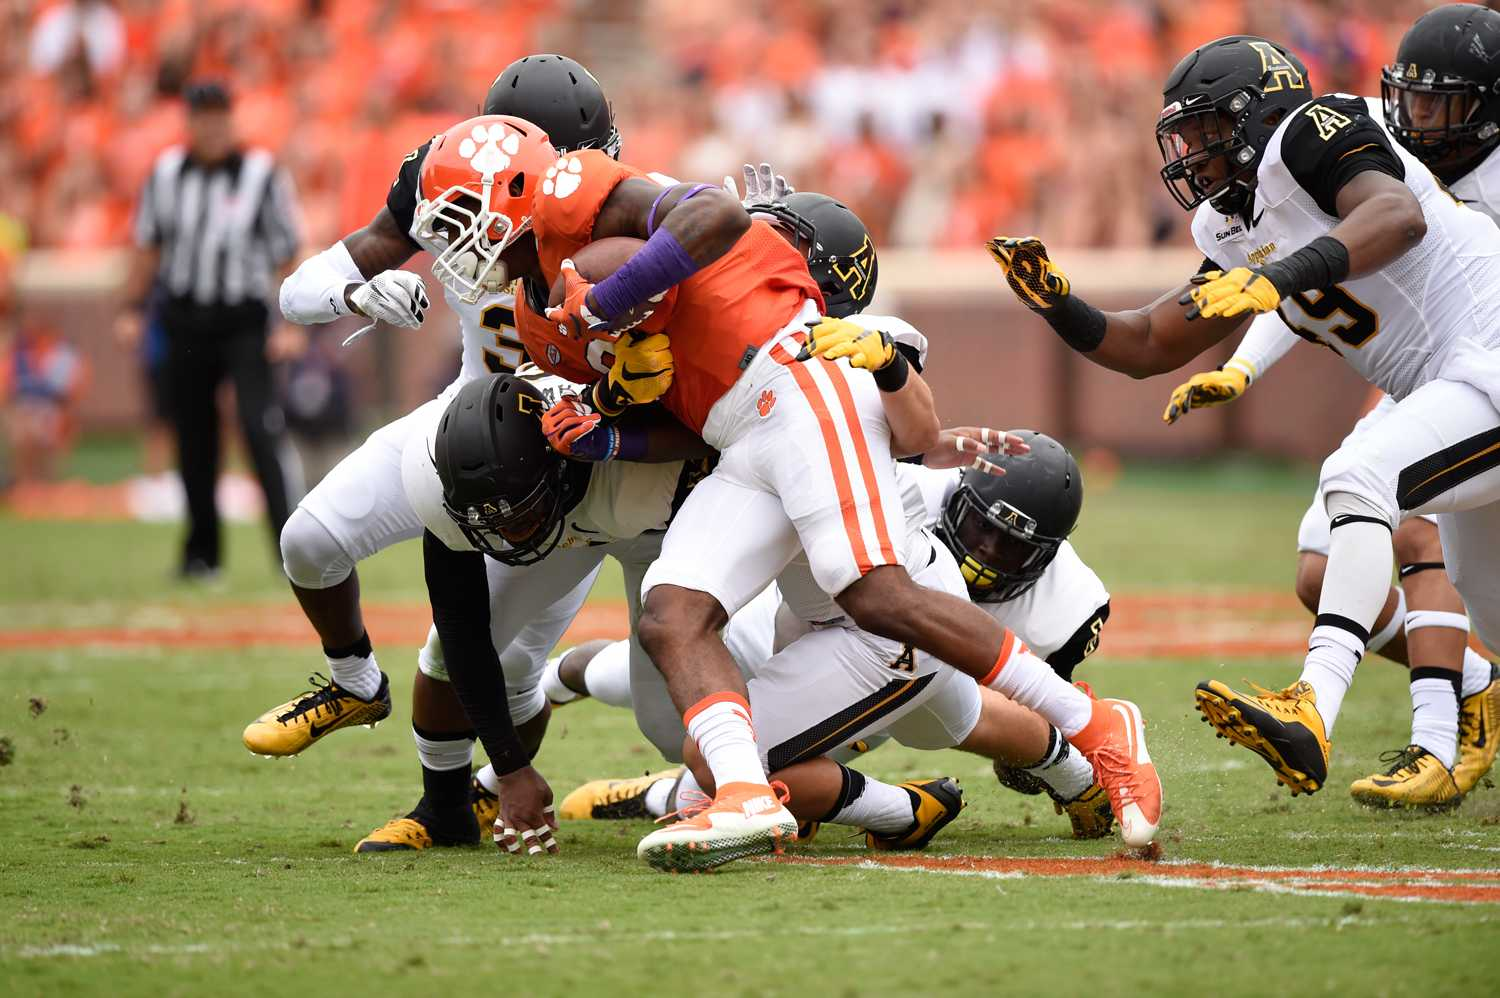 The Appalachian State defense saw a lot of playing time as they tried to slow down the high-octane offense of nationally ranked Clemson. The Mountaineers lost to the Tigers, 41-10. Justin Perry | The Appalachian